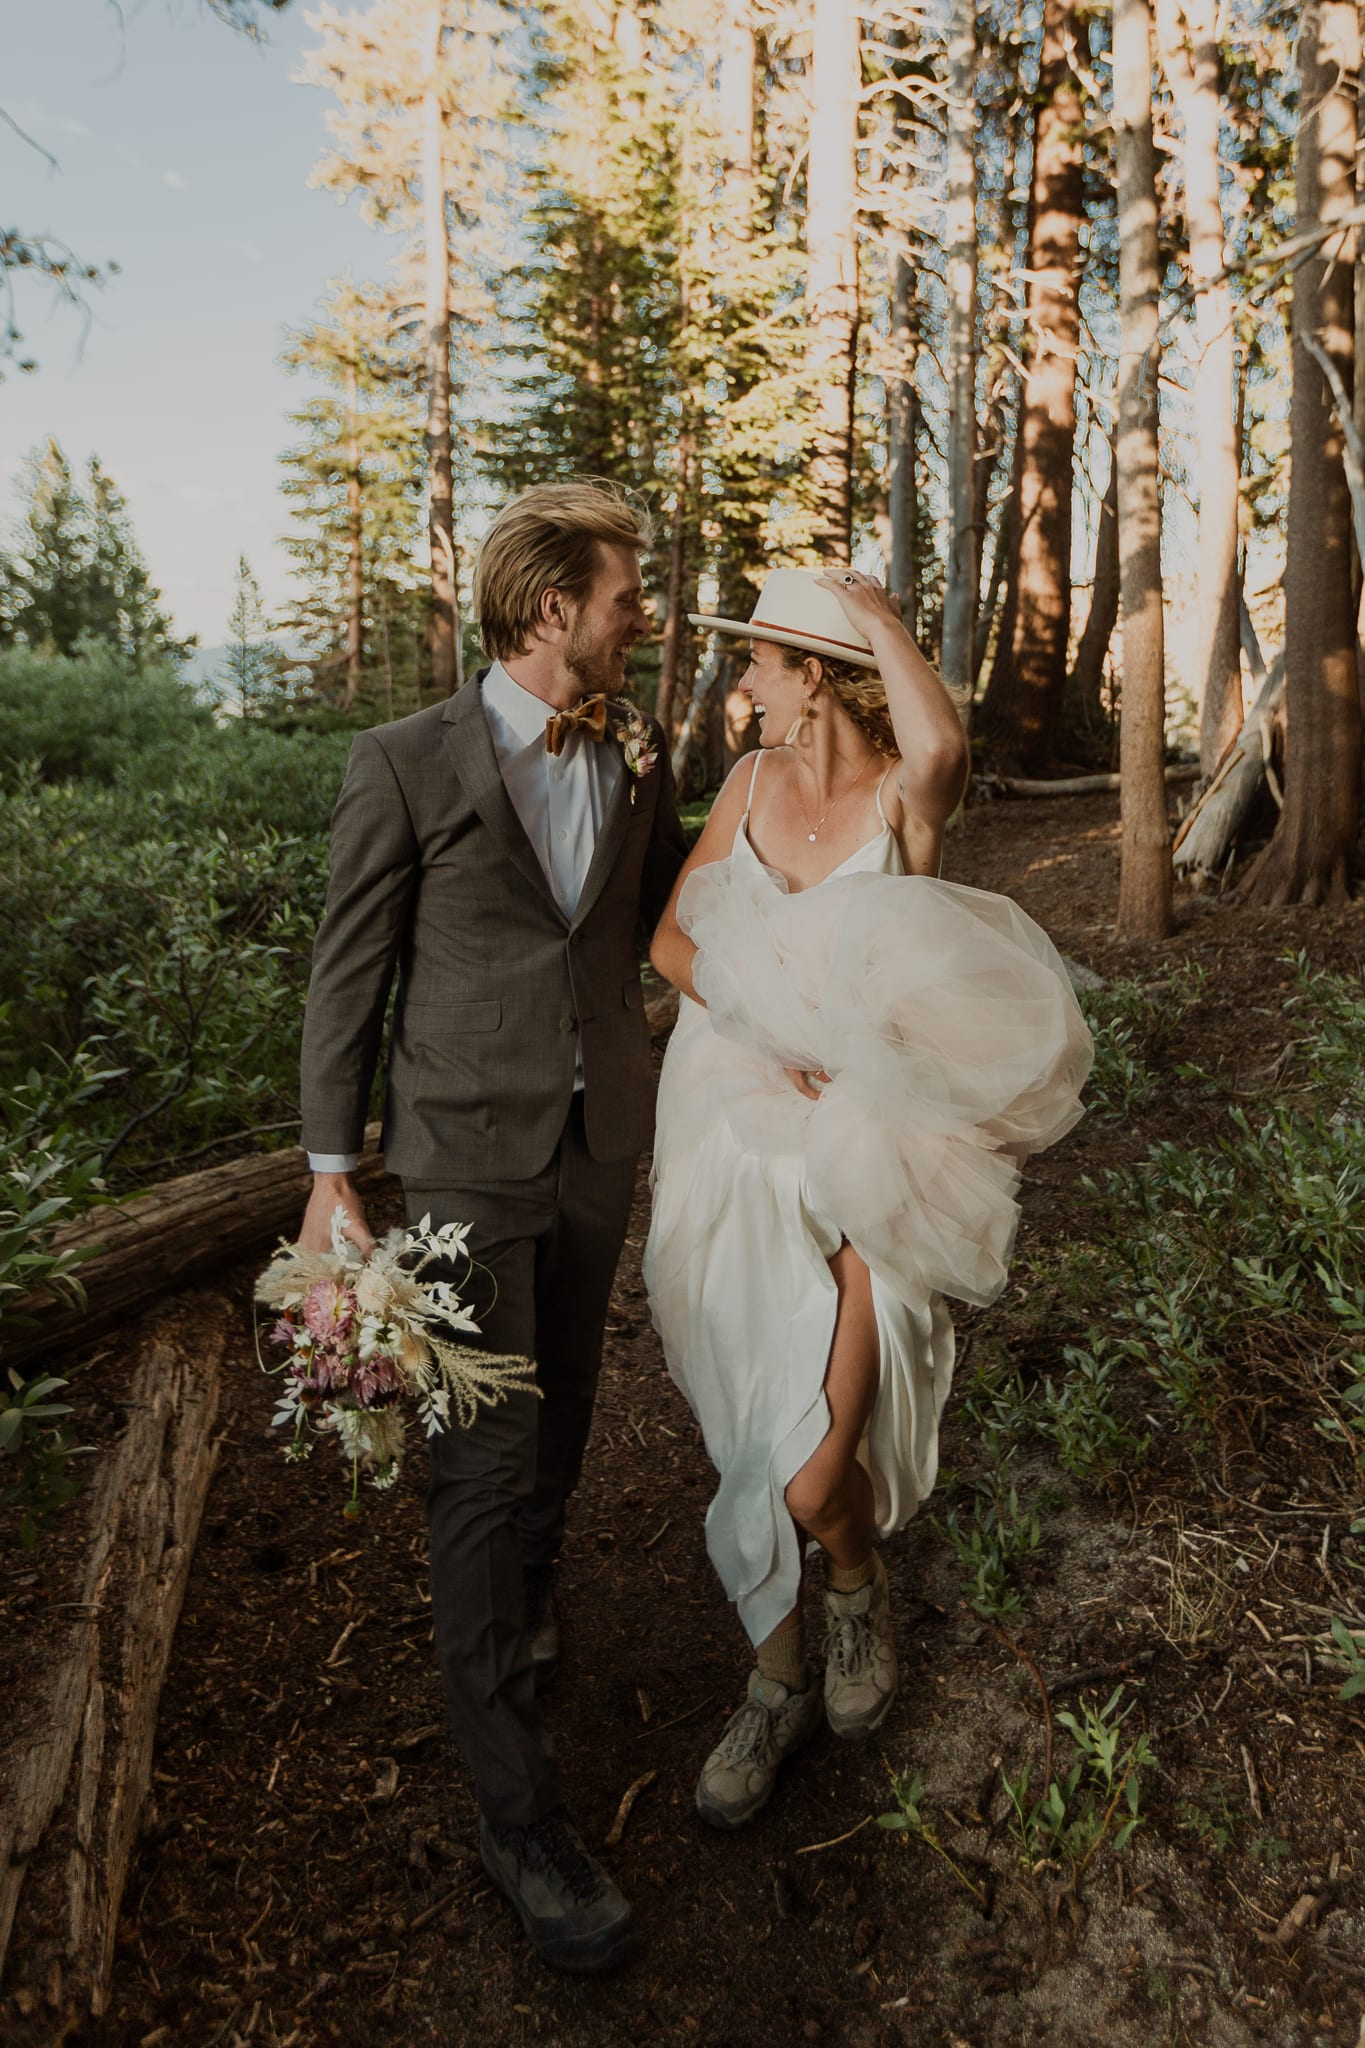 Haylee holds her dress and hat as her and Tyler hike through the Inyo National Forest.